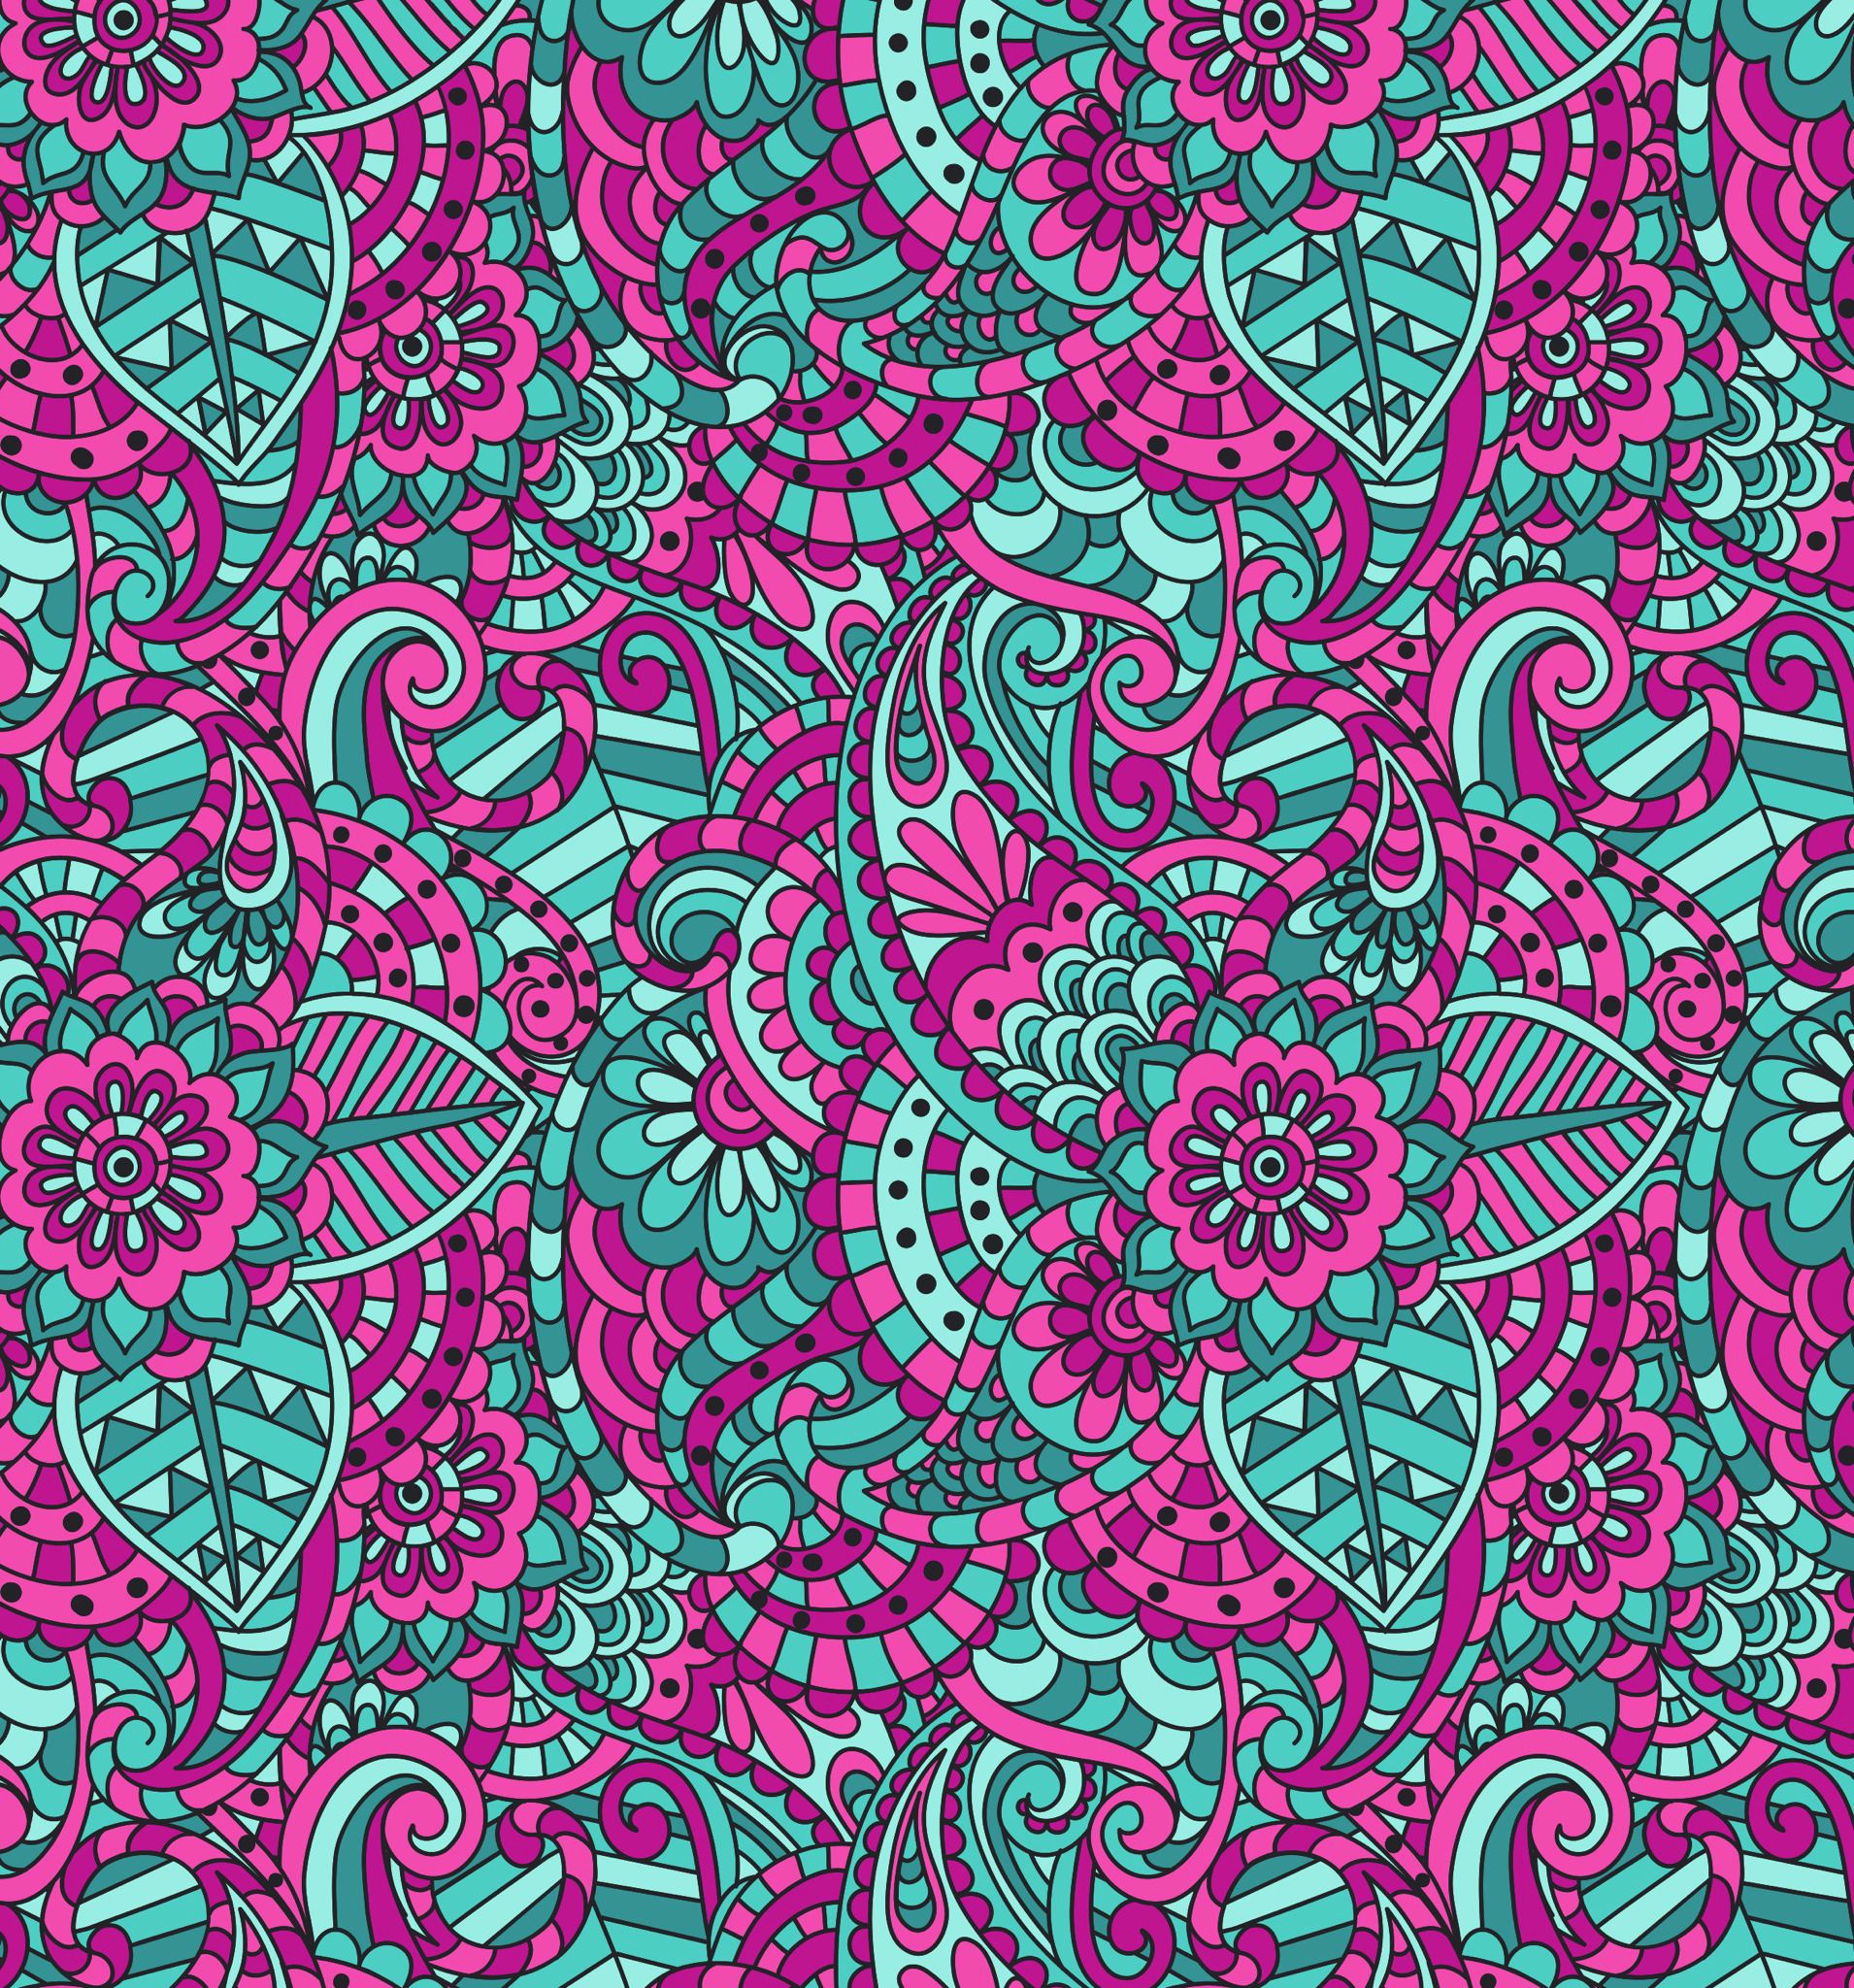 Res: 1910x2048, Paisley Wallpaper New Pin by Inspire someone today On Color Pinterest